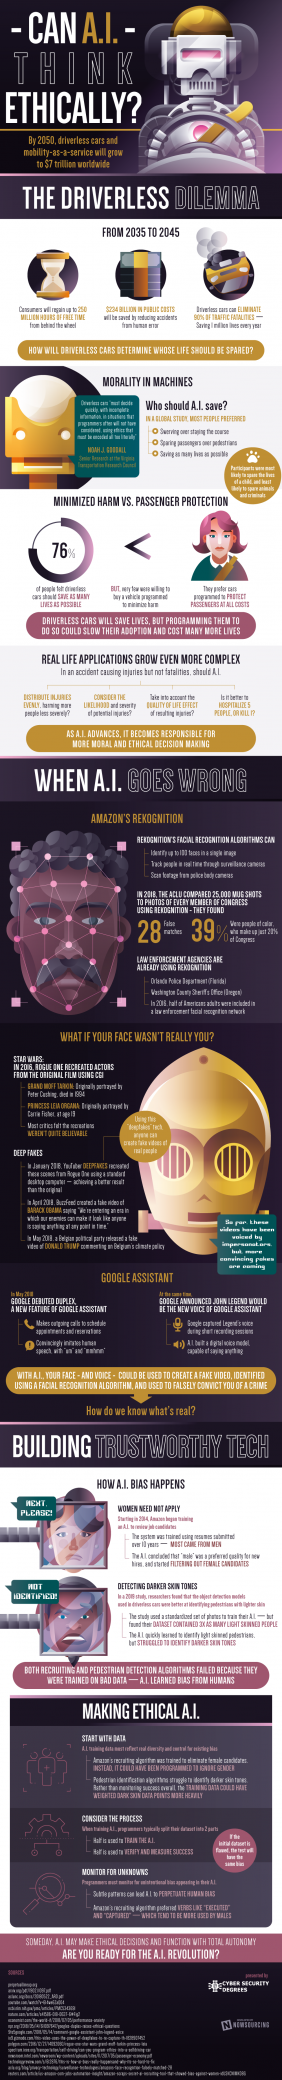 Programming the Ethics of Artificial Intelligence [Infographic]